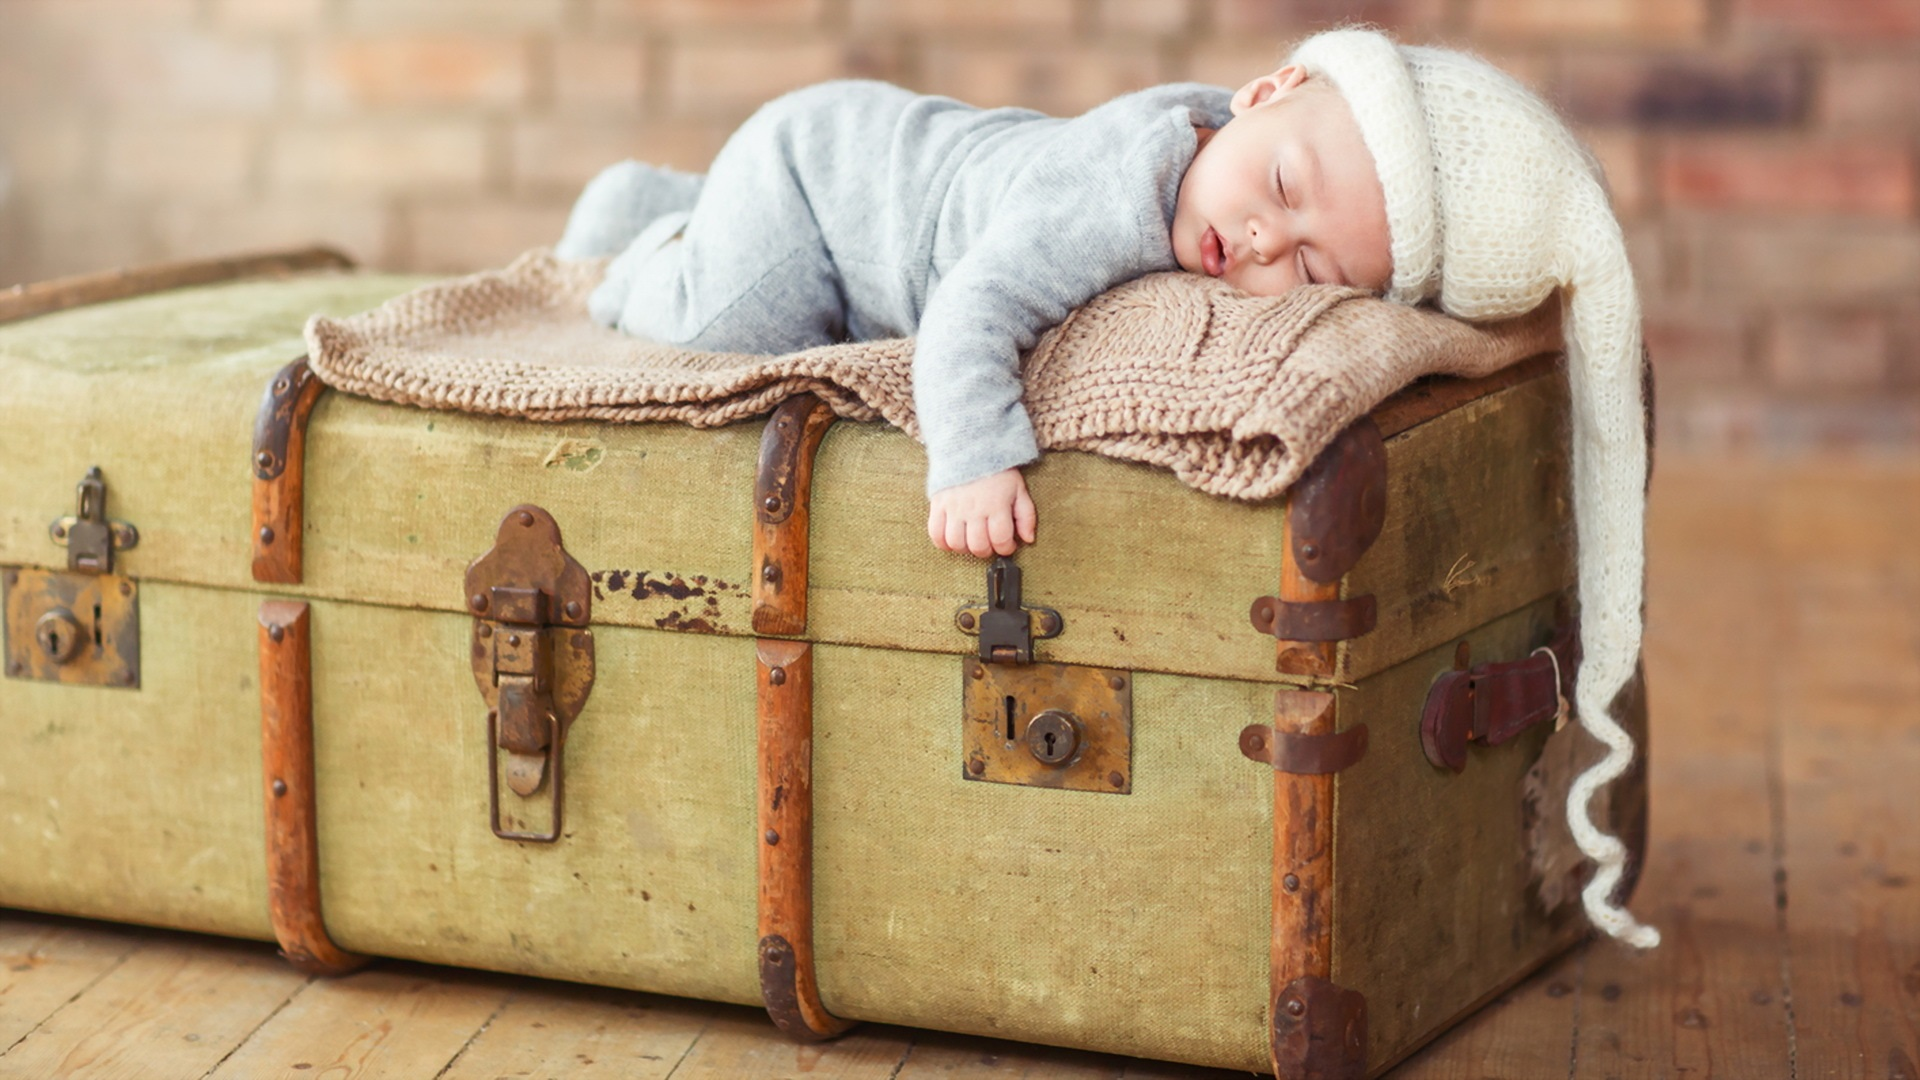 Wallpaper Cute Baby Sleep On Suitcase 1920x1080 Full Hd 2k Picture Image